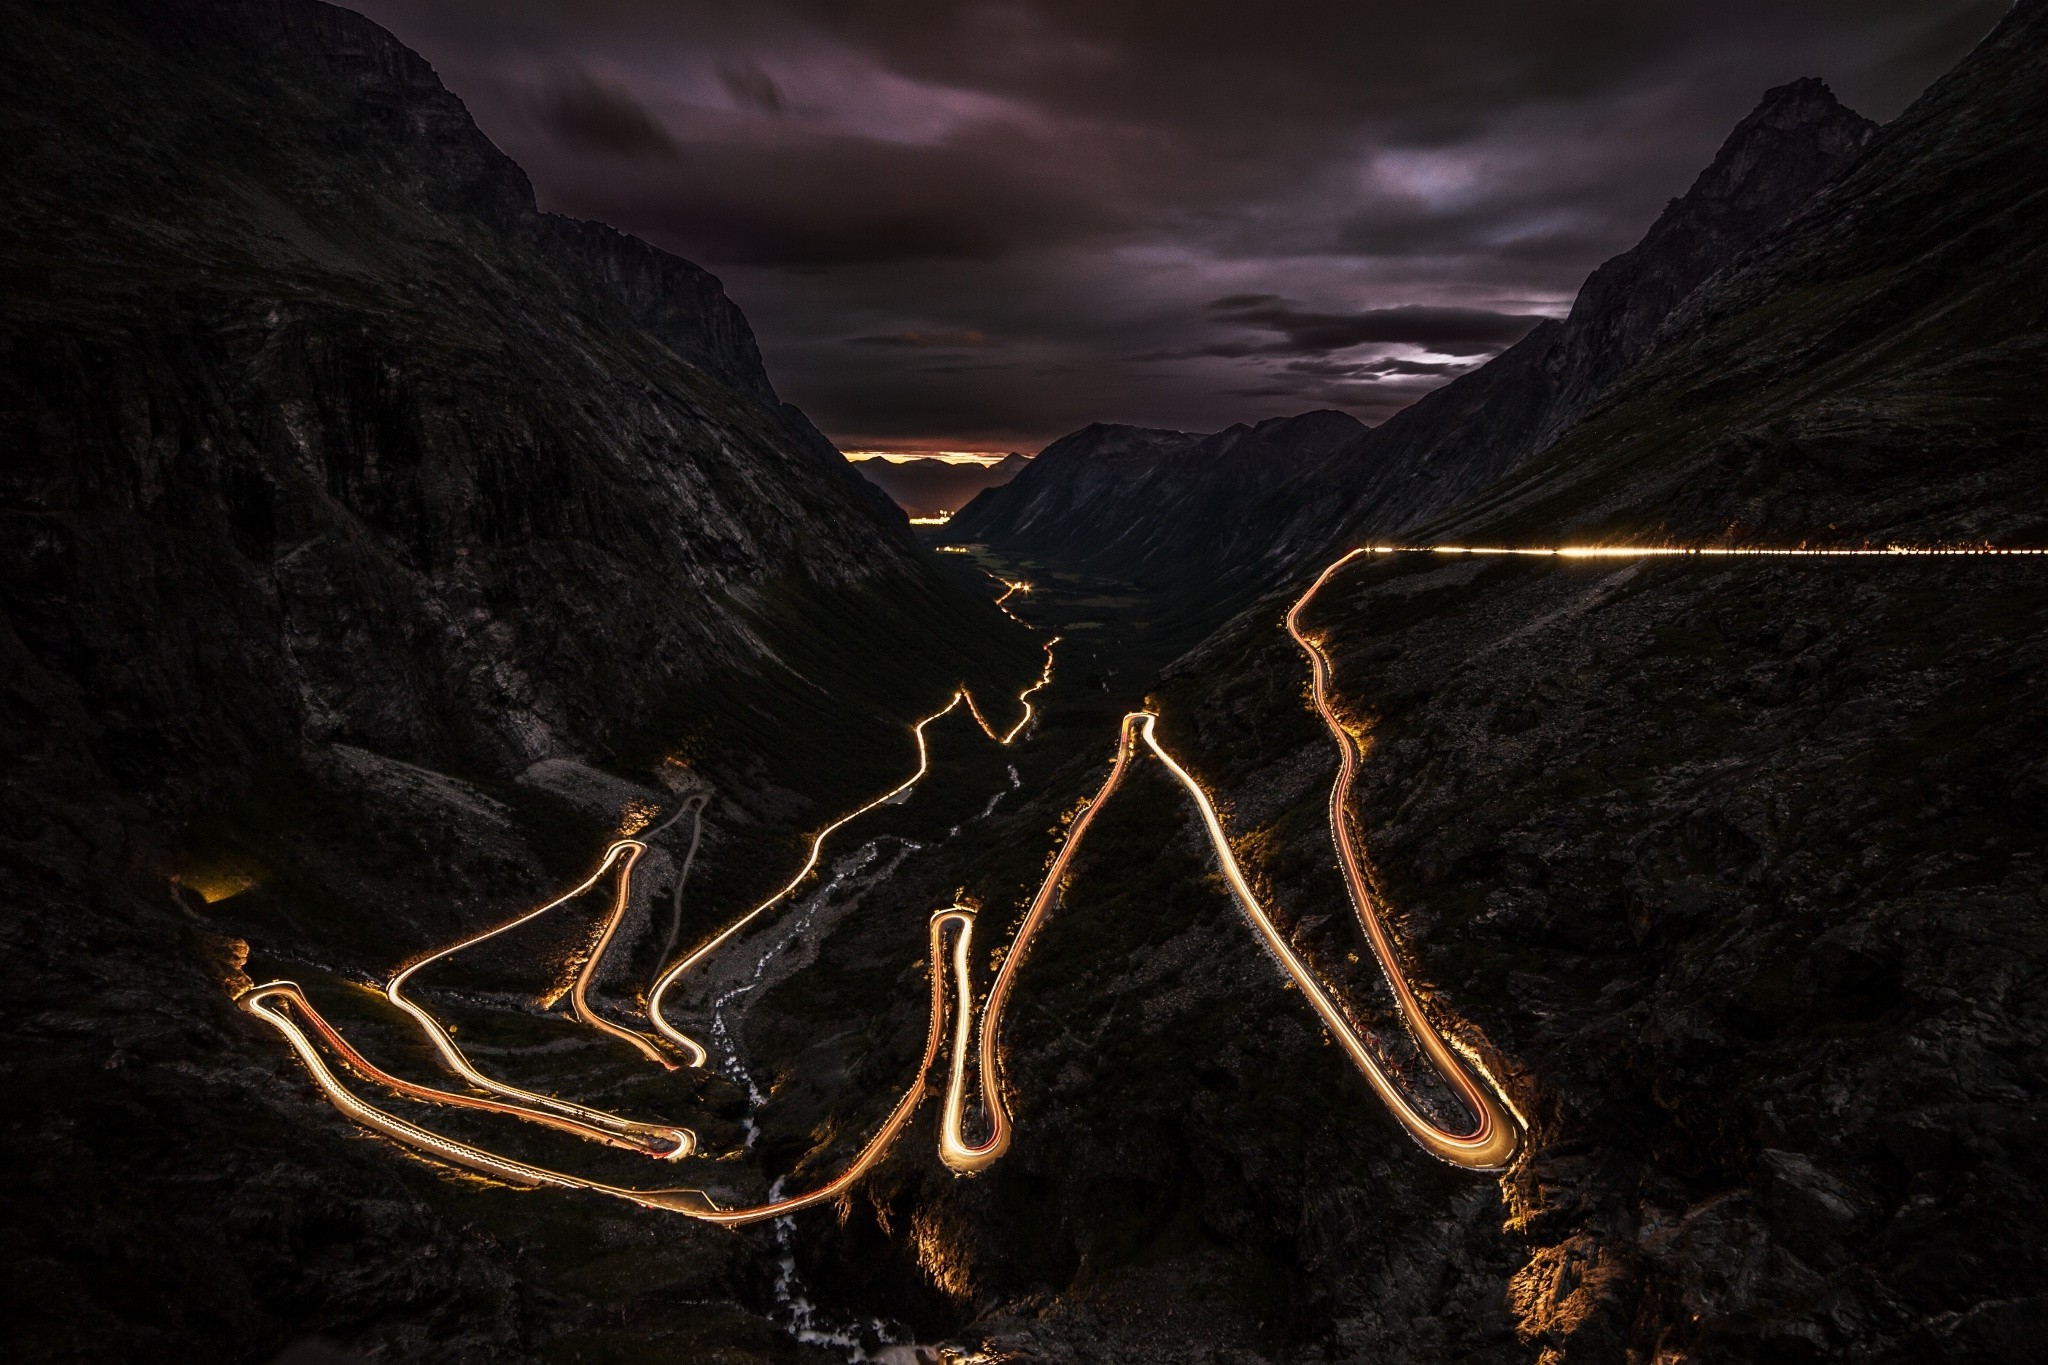 4k Wallpaper 3d National Geographic Road Night Lights Norway Mountain Landscape Long